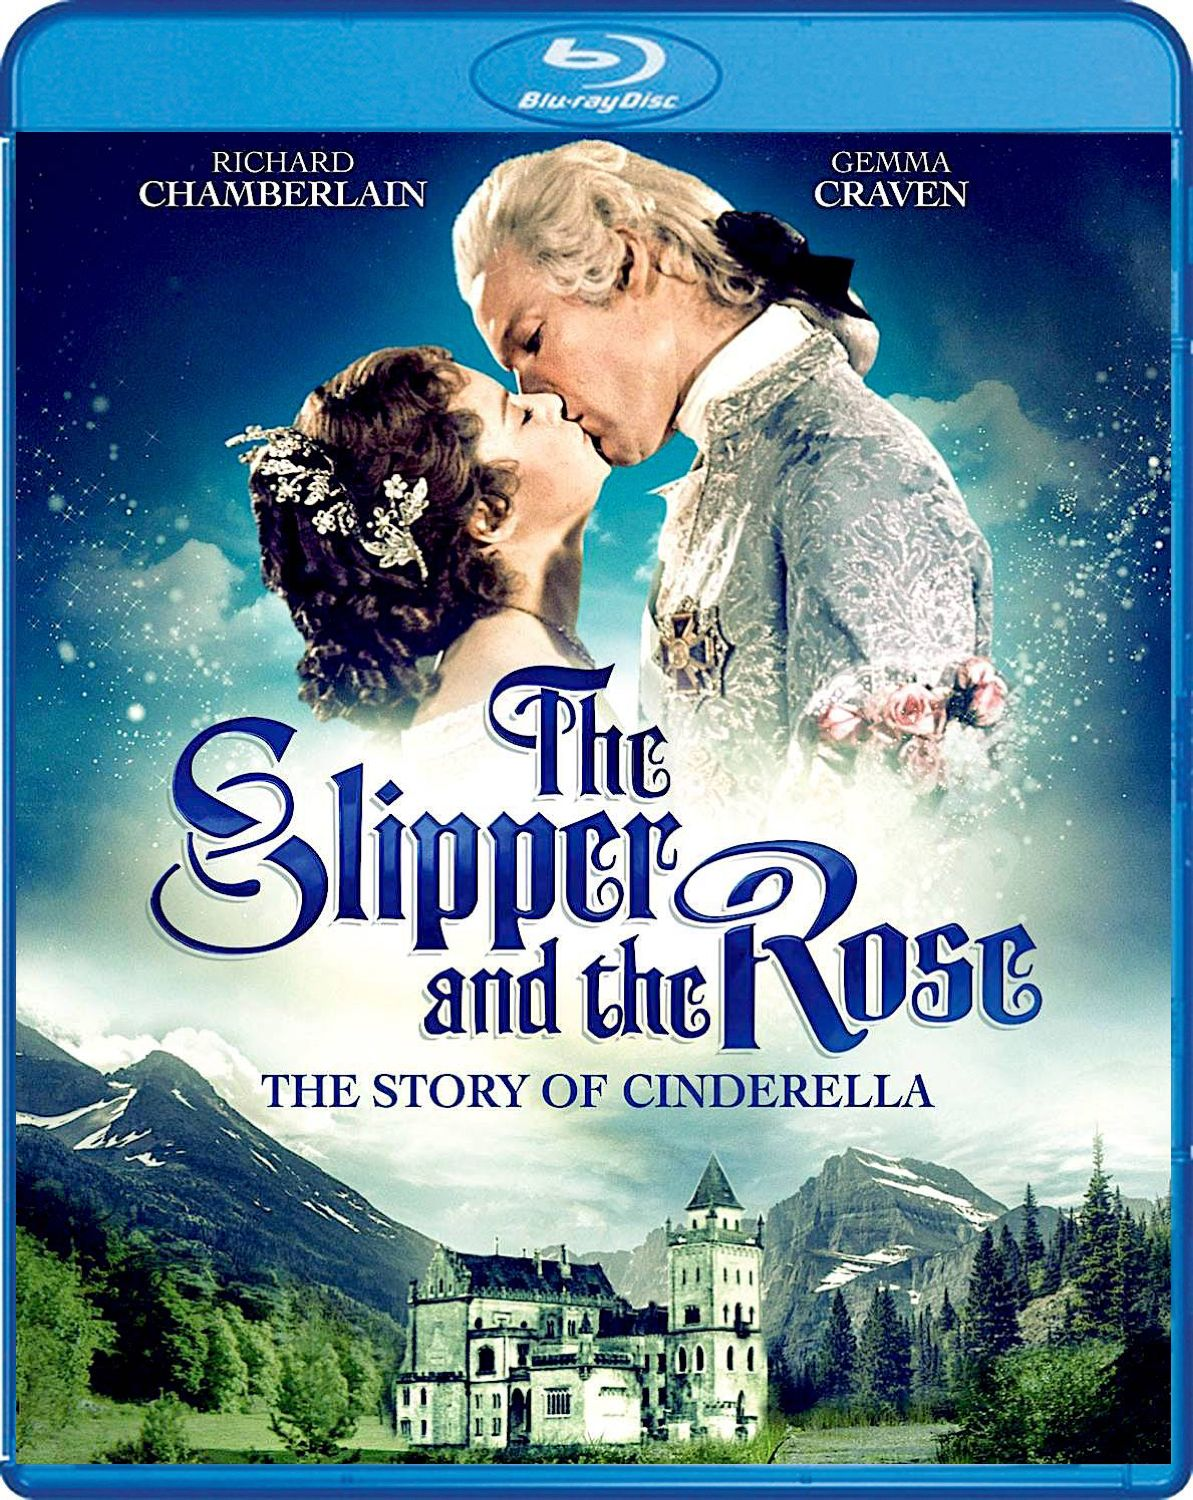 THE SLIPPER AND THE ROSE THE STORY OF CINDERELLA BLURAY